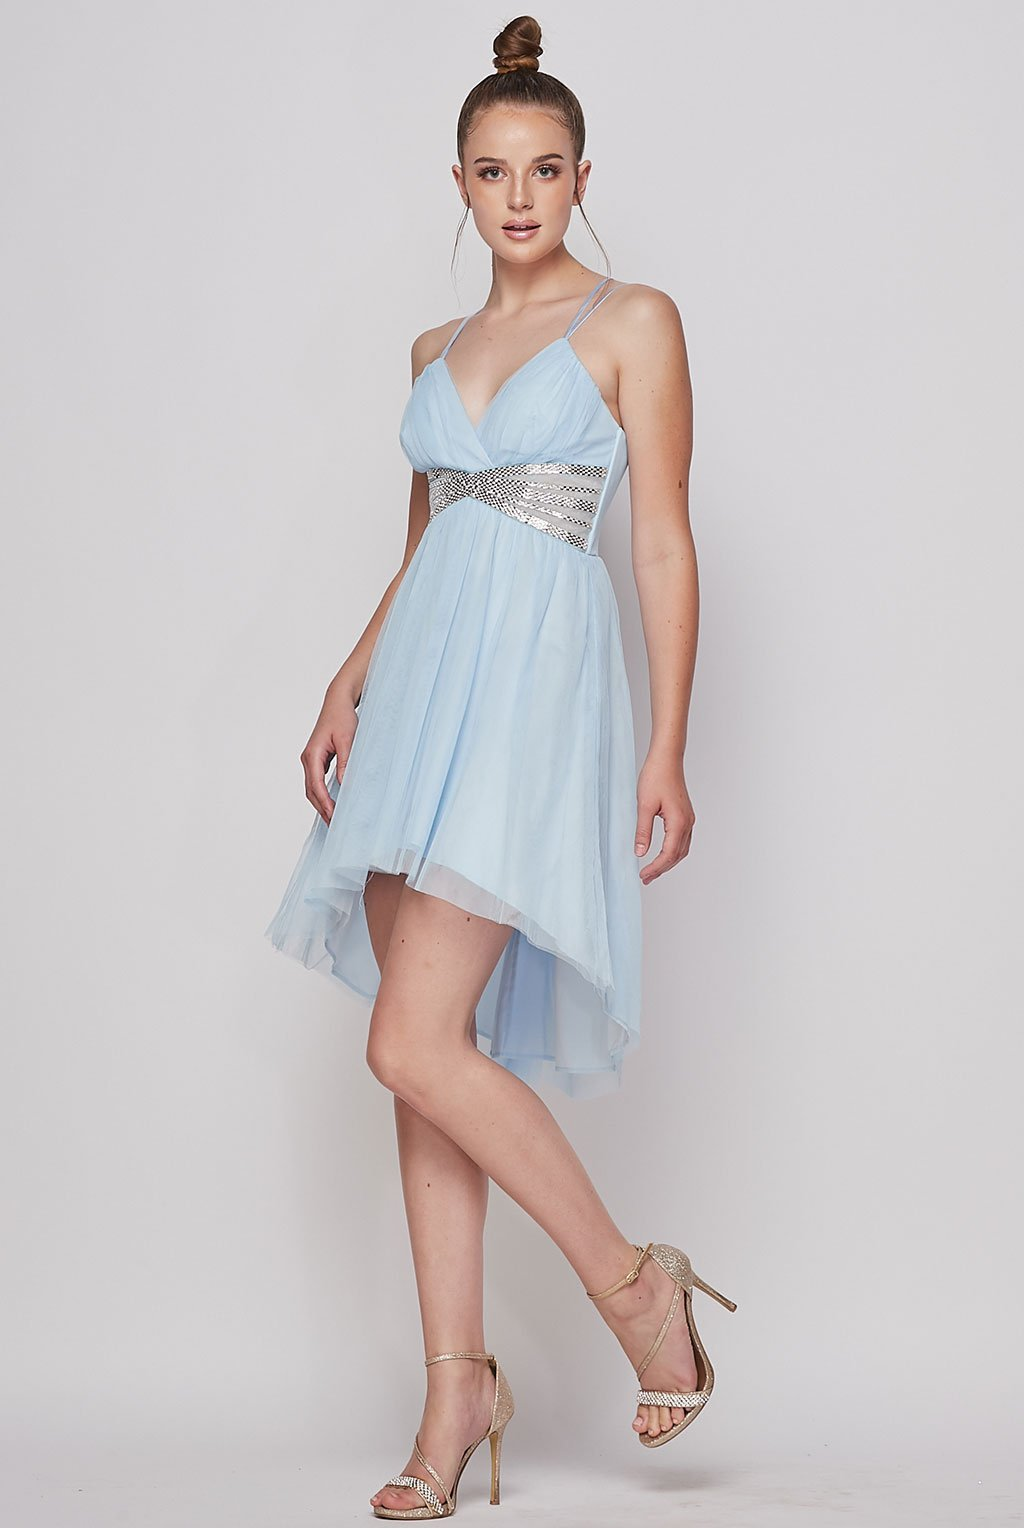 Teeze Me | Jewel Waist Fit and Flare Grecian Style Dress | Ice Blue